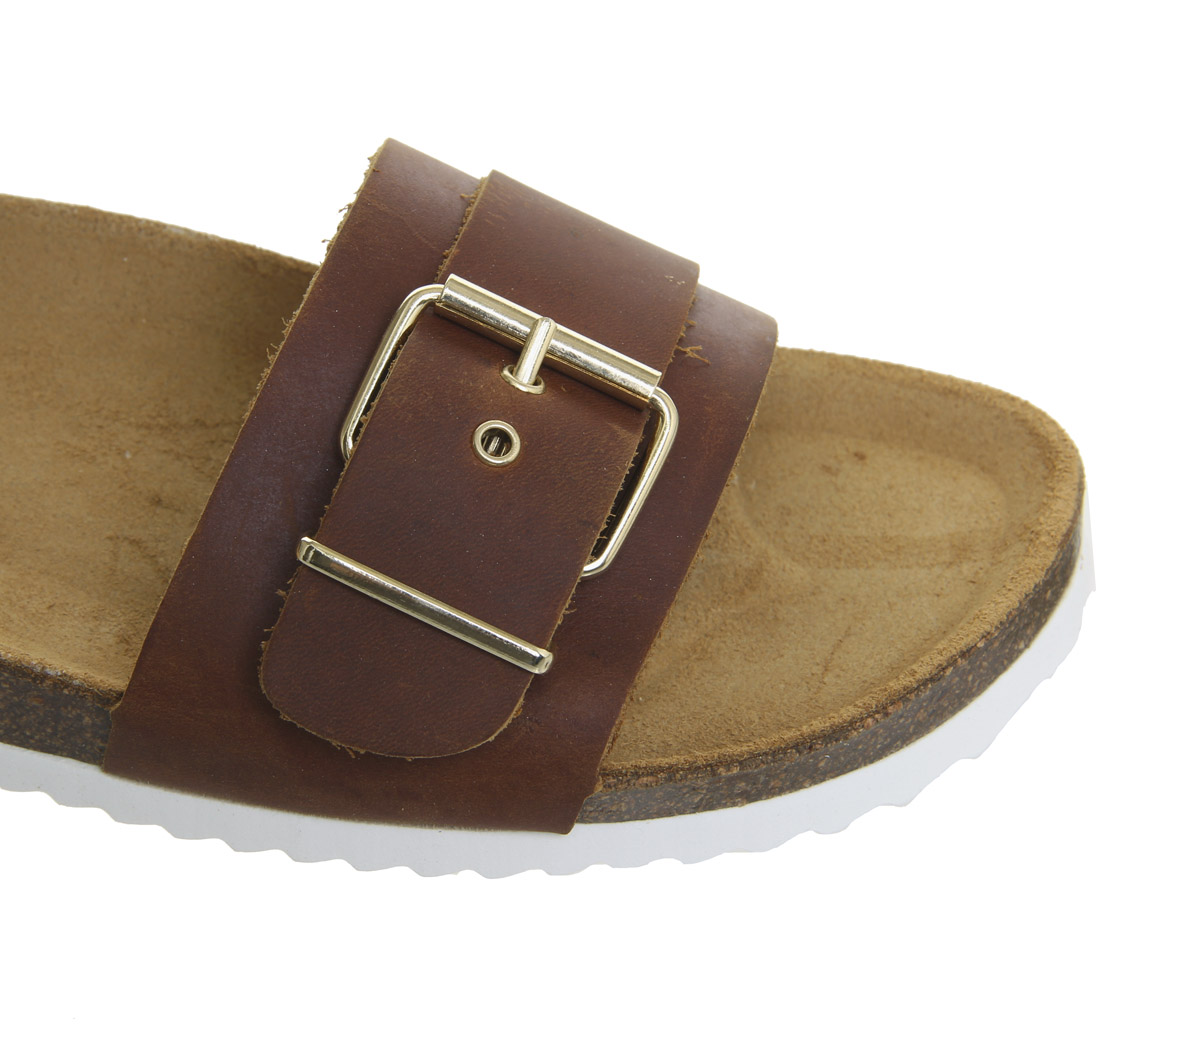 Womens-Office-Stereo-Buckle-Footbed-Sandals-Tan-Leather-Sandals thumbnail 12